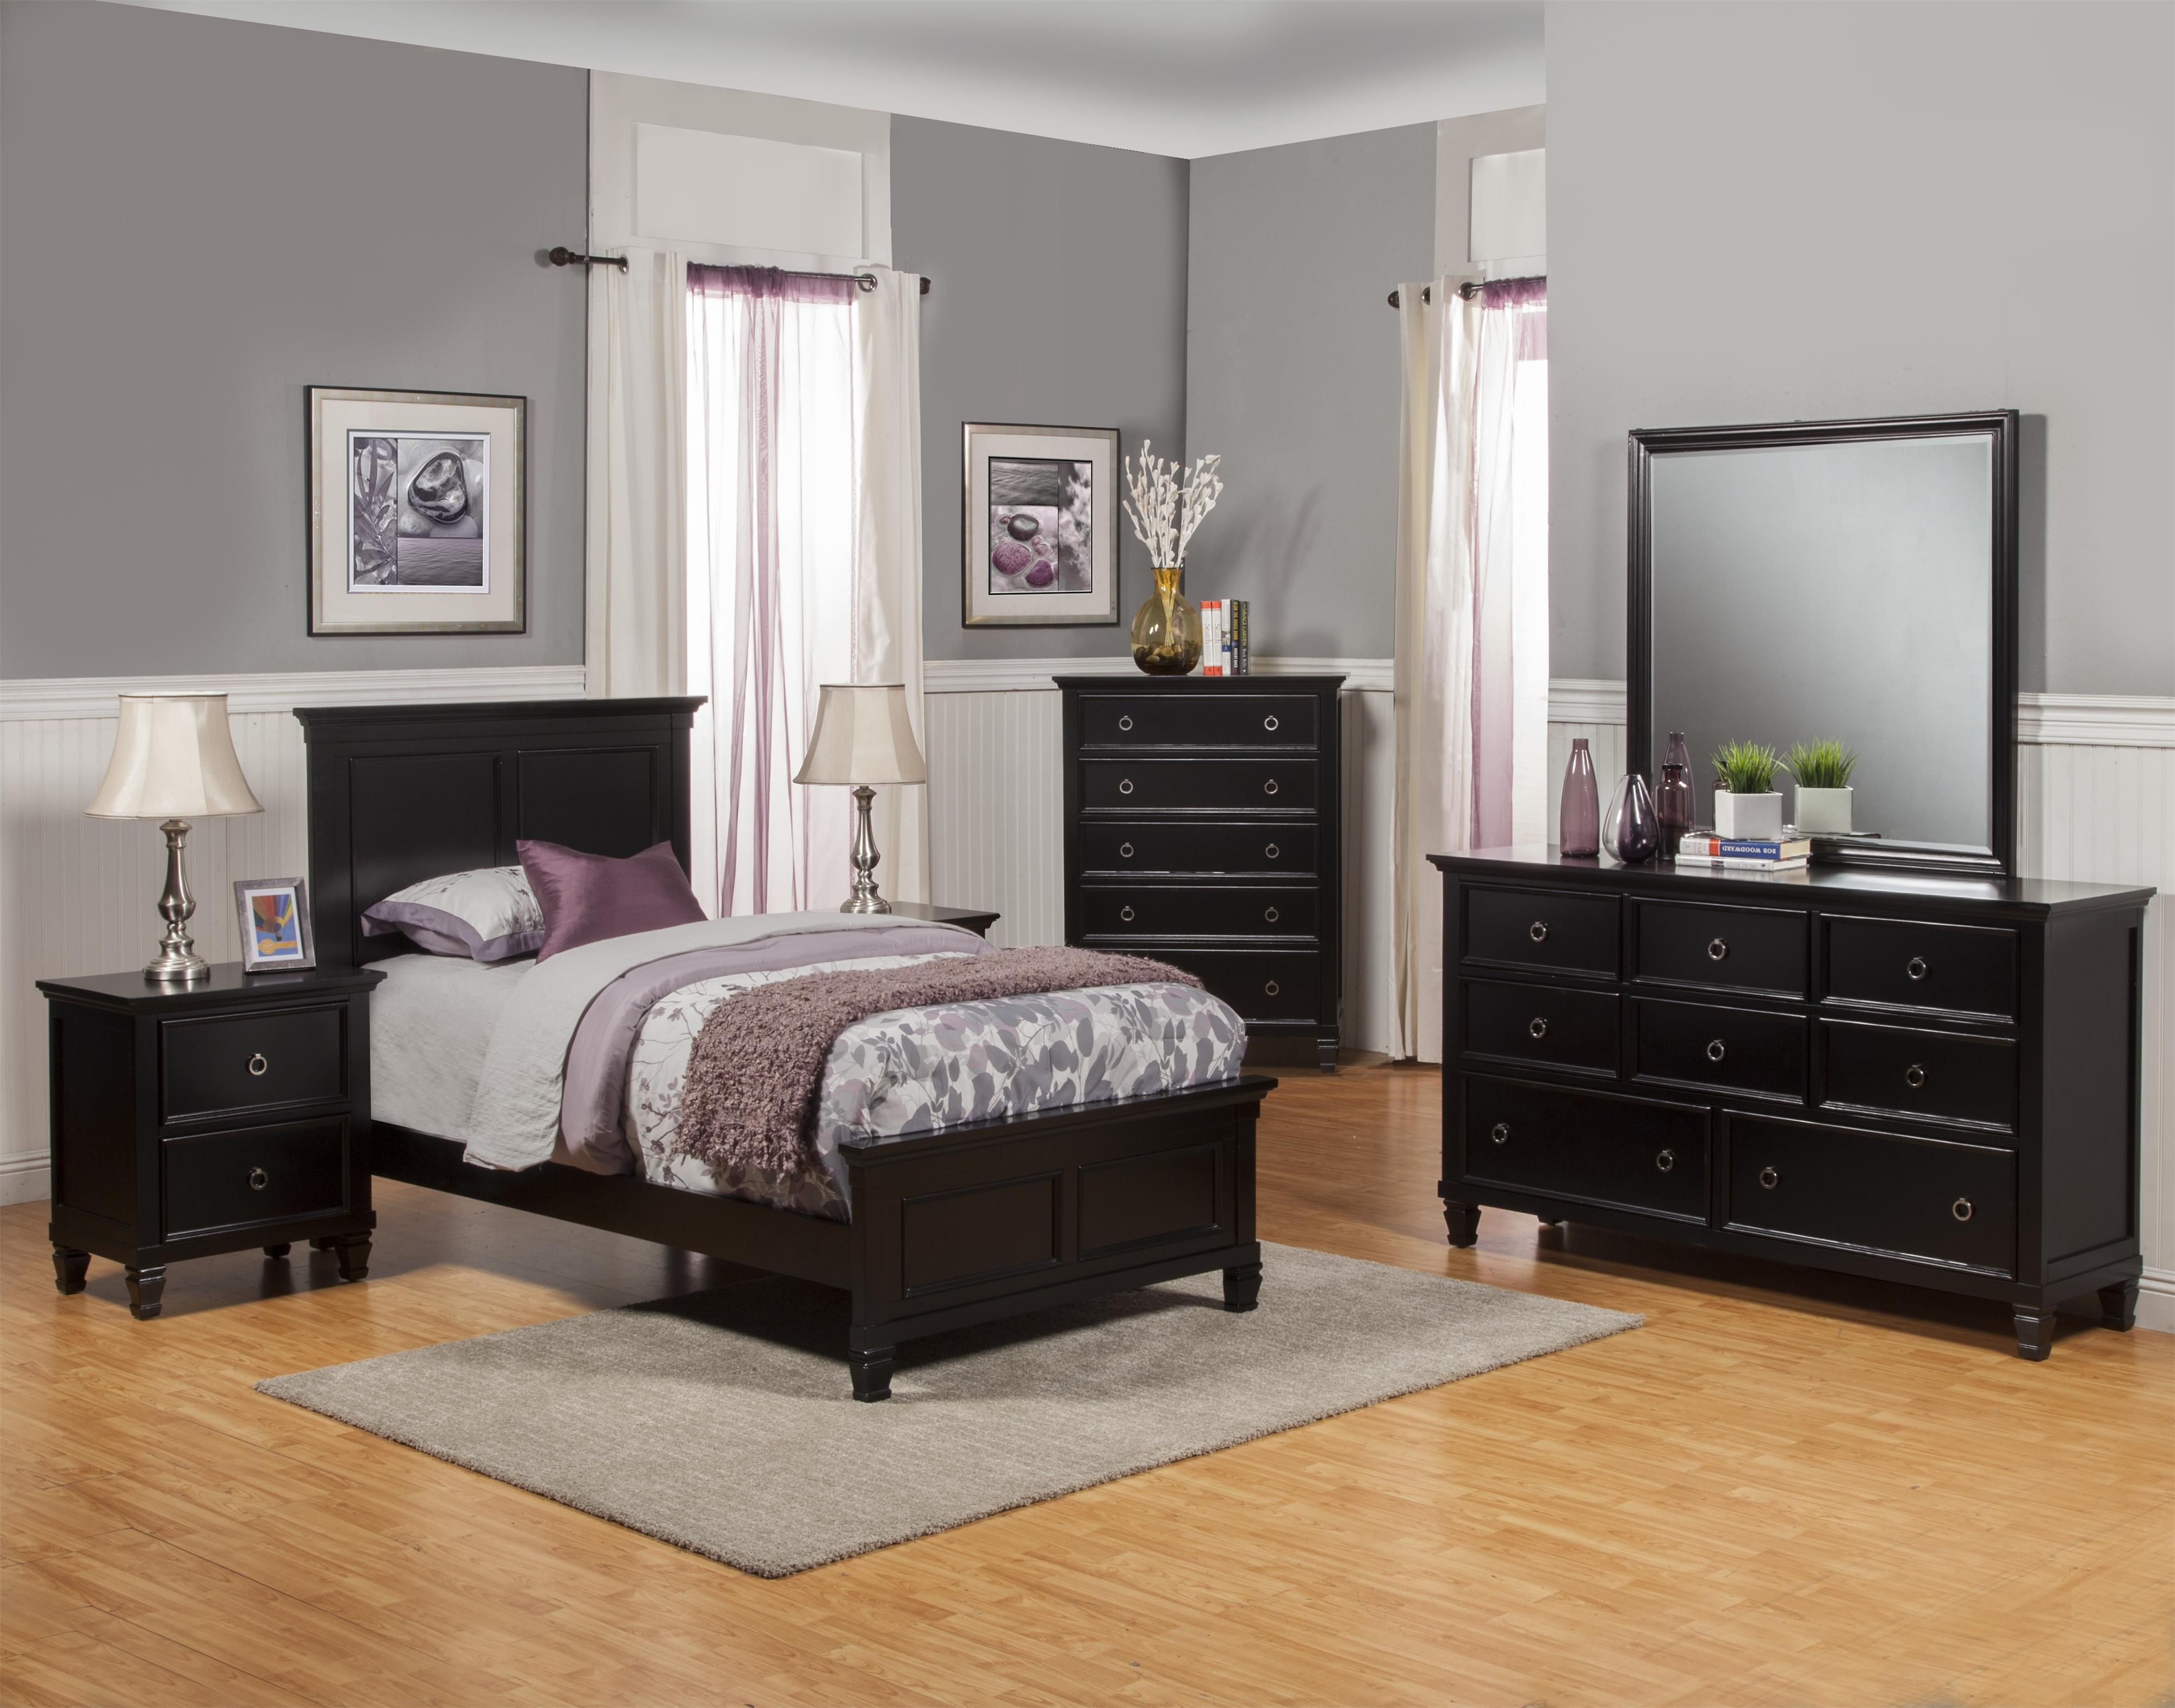 New Classic Tamarack Full Bedroom Group  - Item Number: 045 F Bedroom Group 1